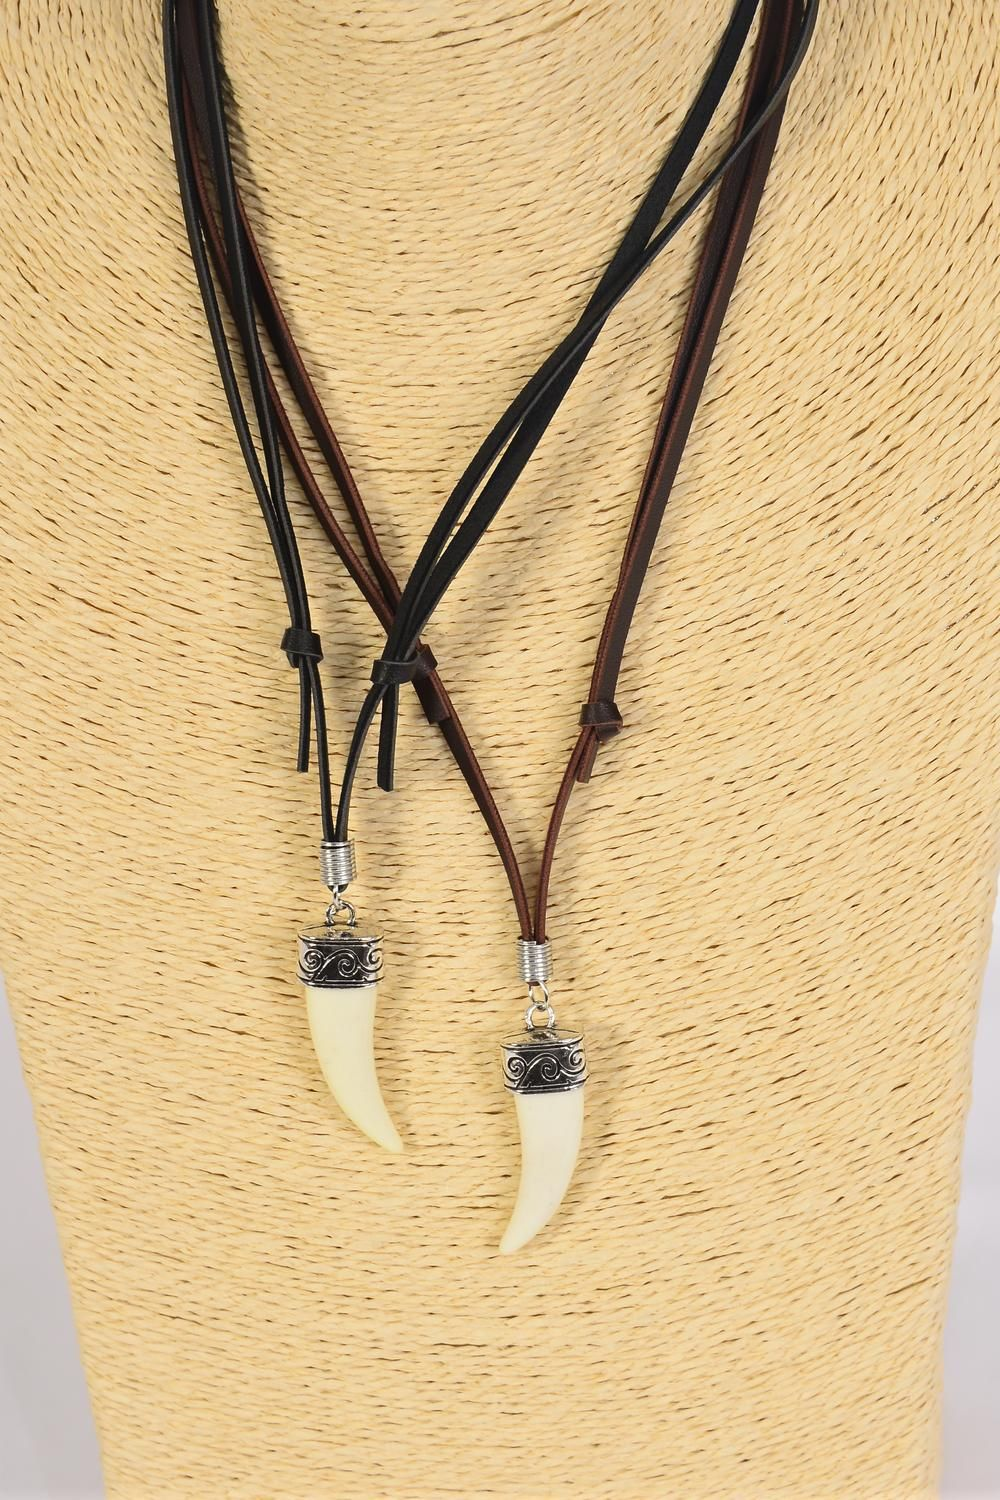 Men's Leather Necklace Tusk/DZ **Adjustable** 6 Black & 6 Brown Leather Mix,Hang Tag & OPP Bag & UPC Code -